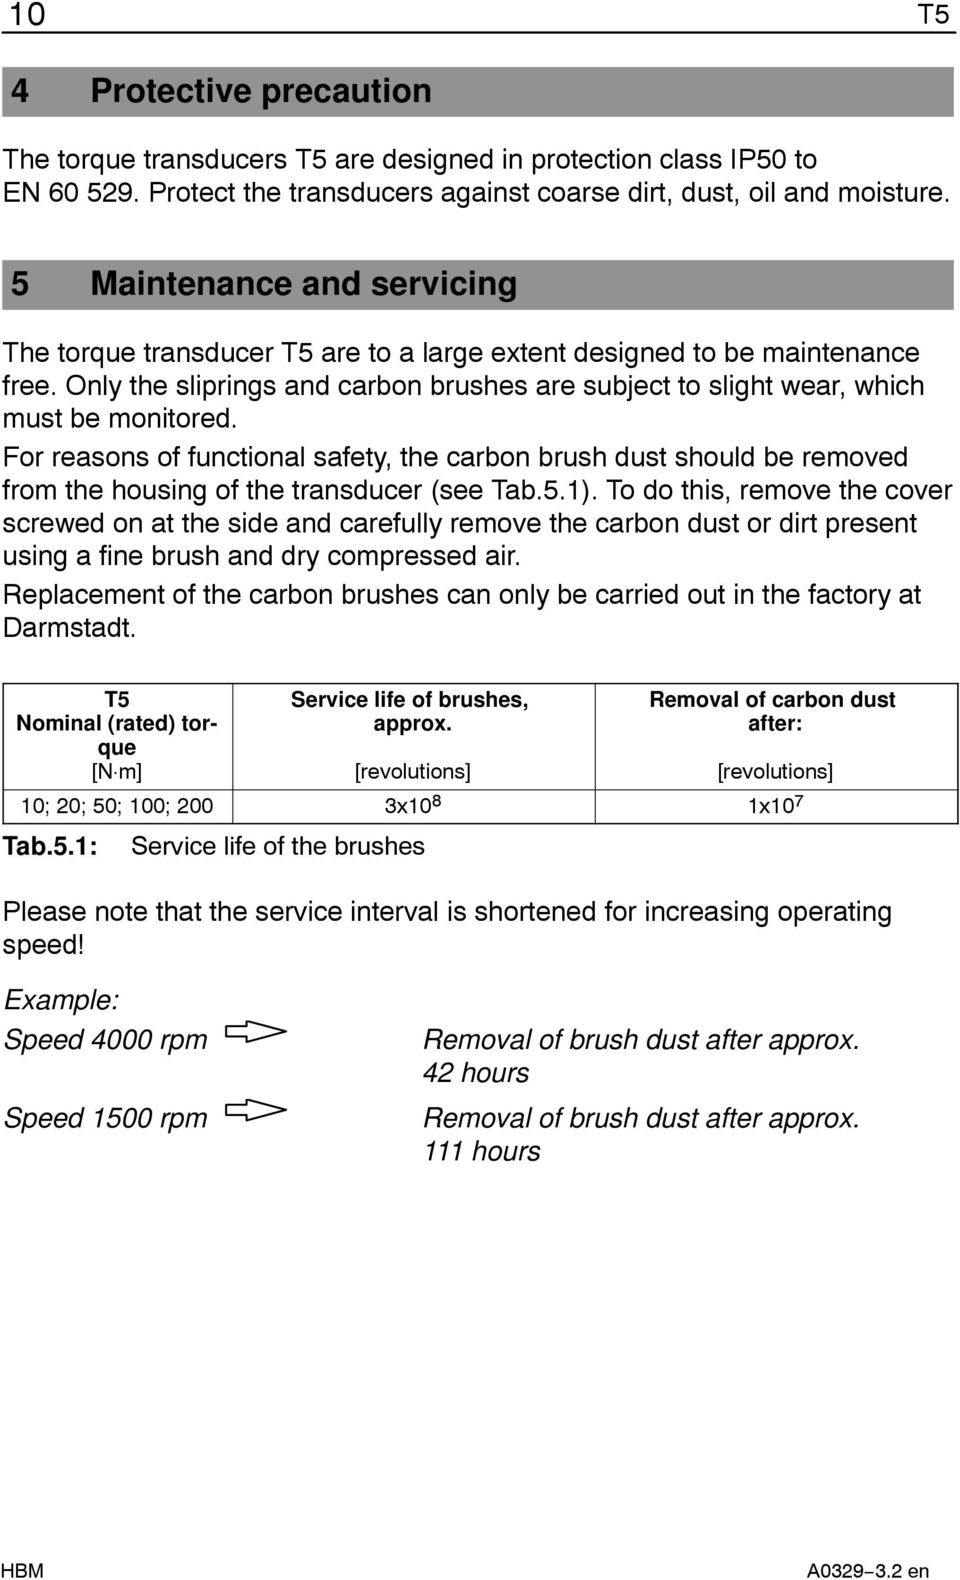 For reasons of functional safety, the carbon brush dust should be removed from the housing of the transducer (see Tab.5.1).